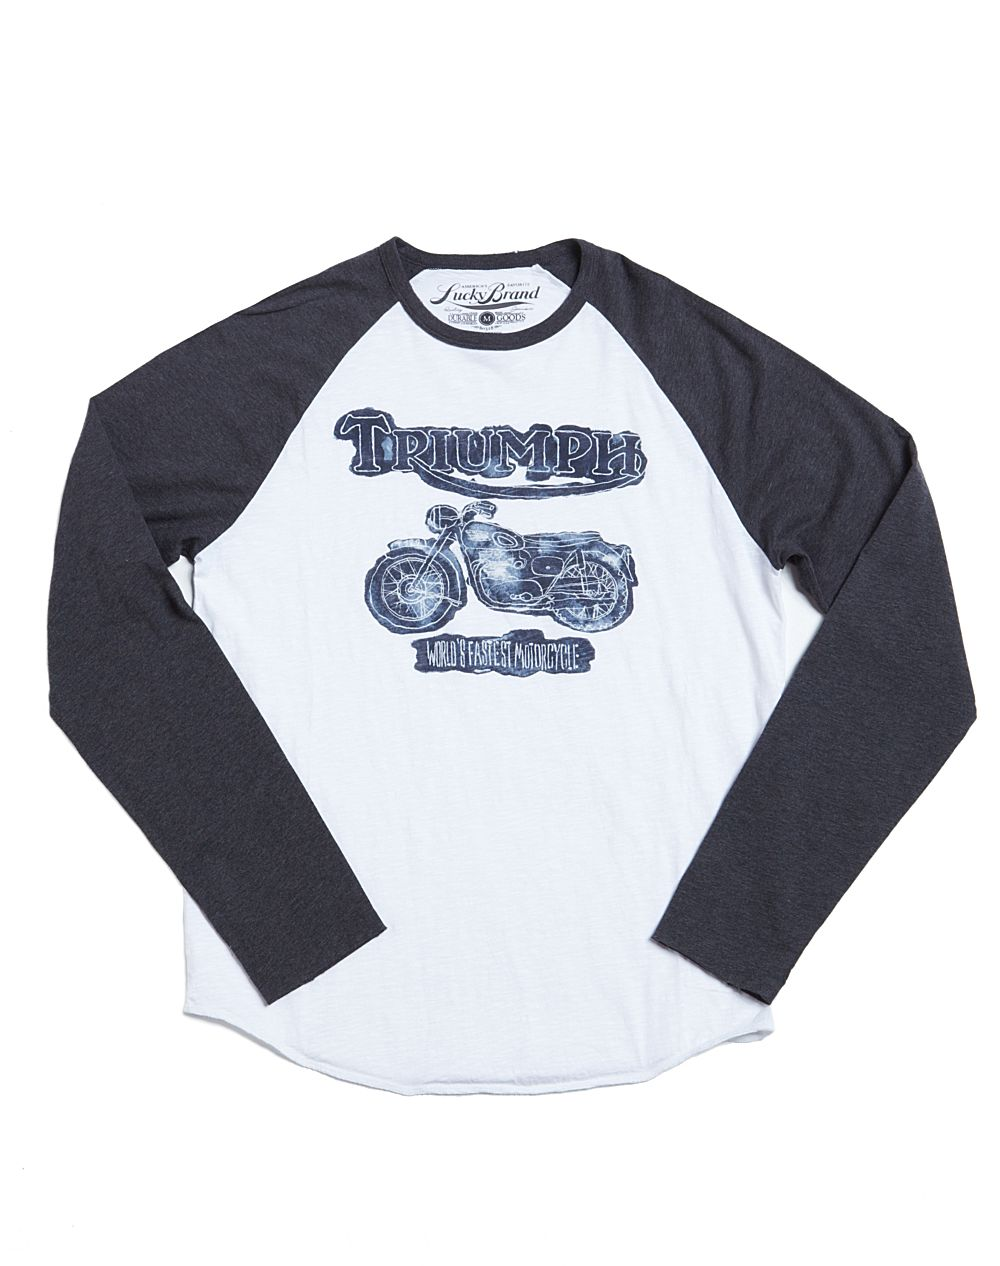 Lucky brand triumph worlds fastest motorcycle t shirt in for Lucky brand triumph shirt